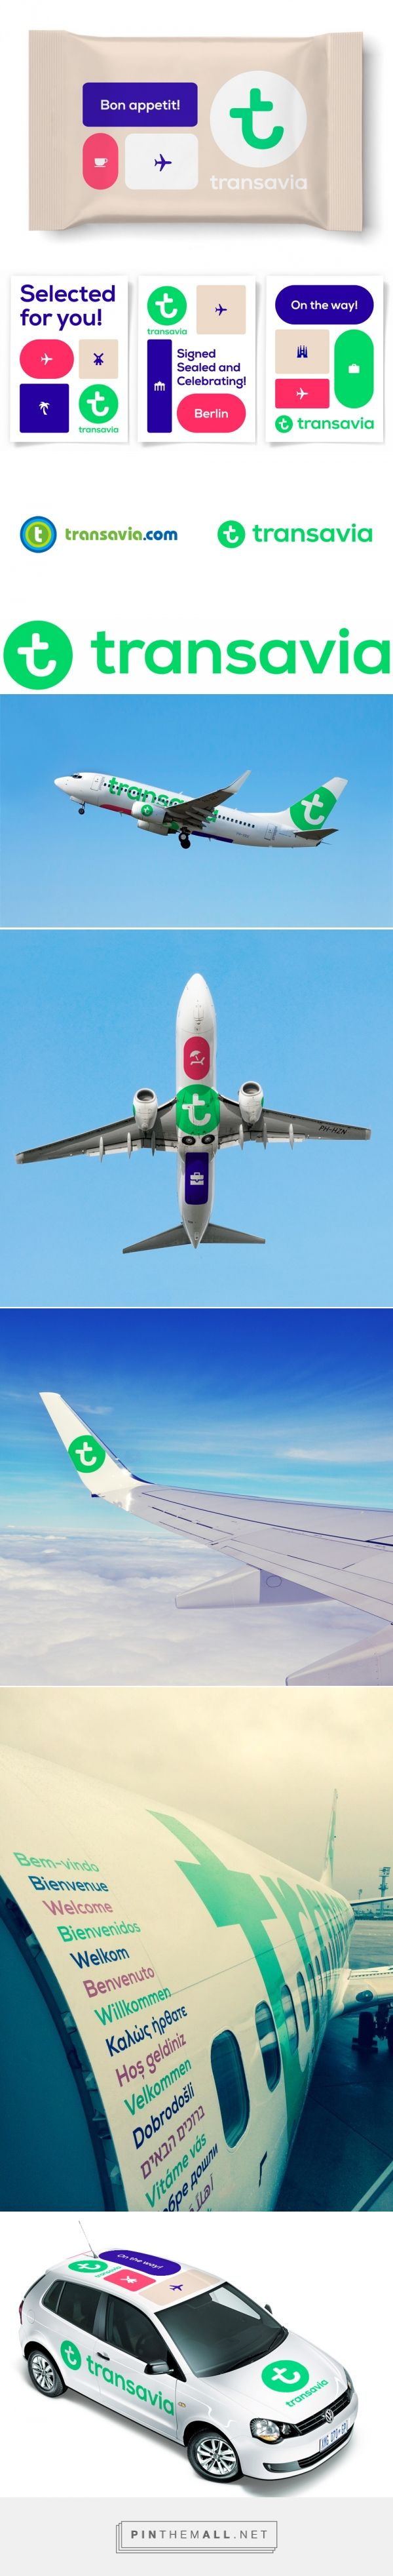 Brand New: New Logo, Identity, and Livery for Transavia by Studio Dumbar... - a grouped images picture - Pin Them All